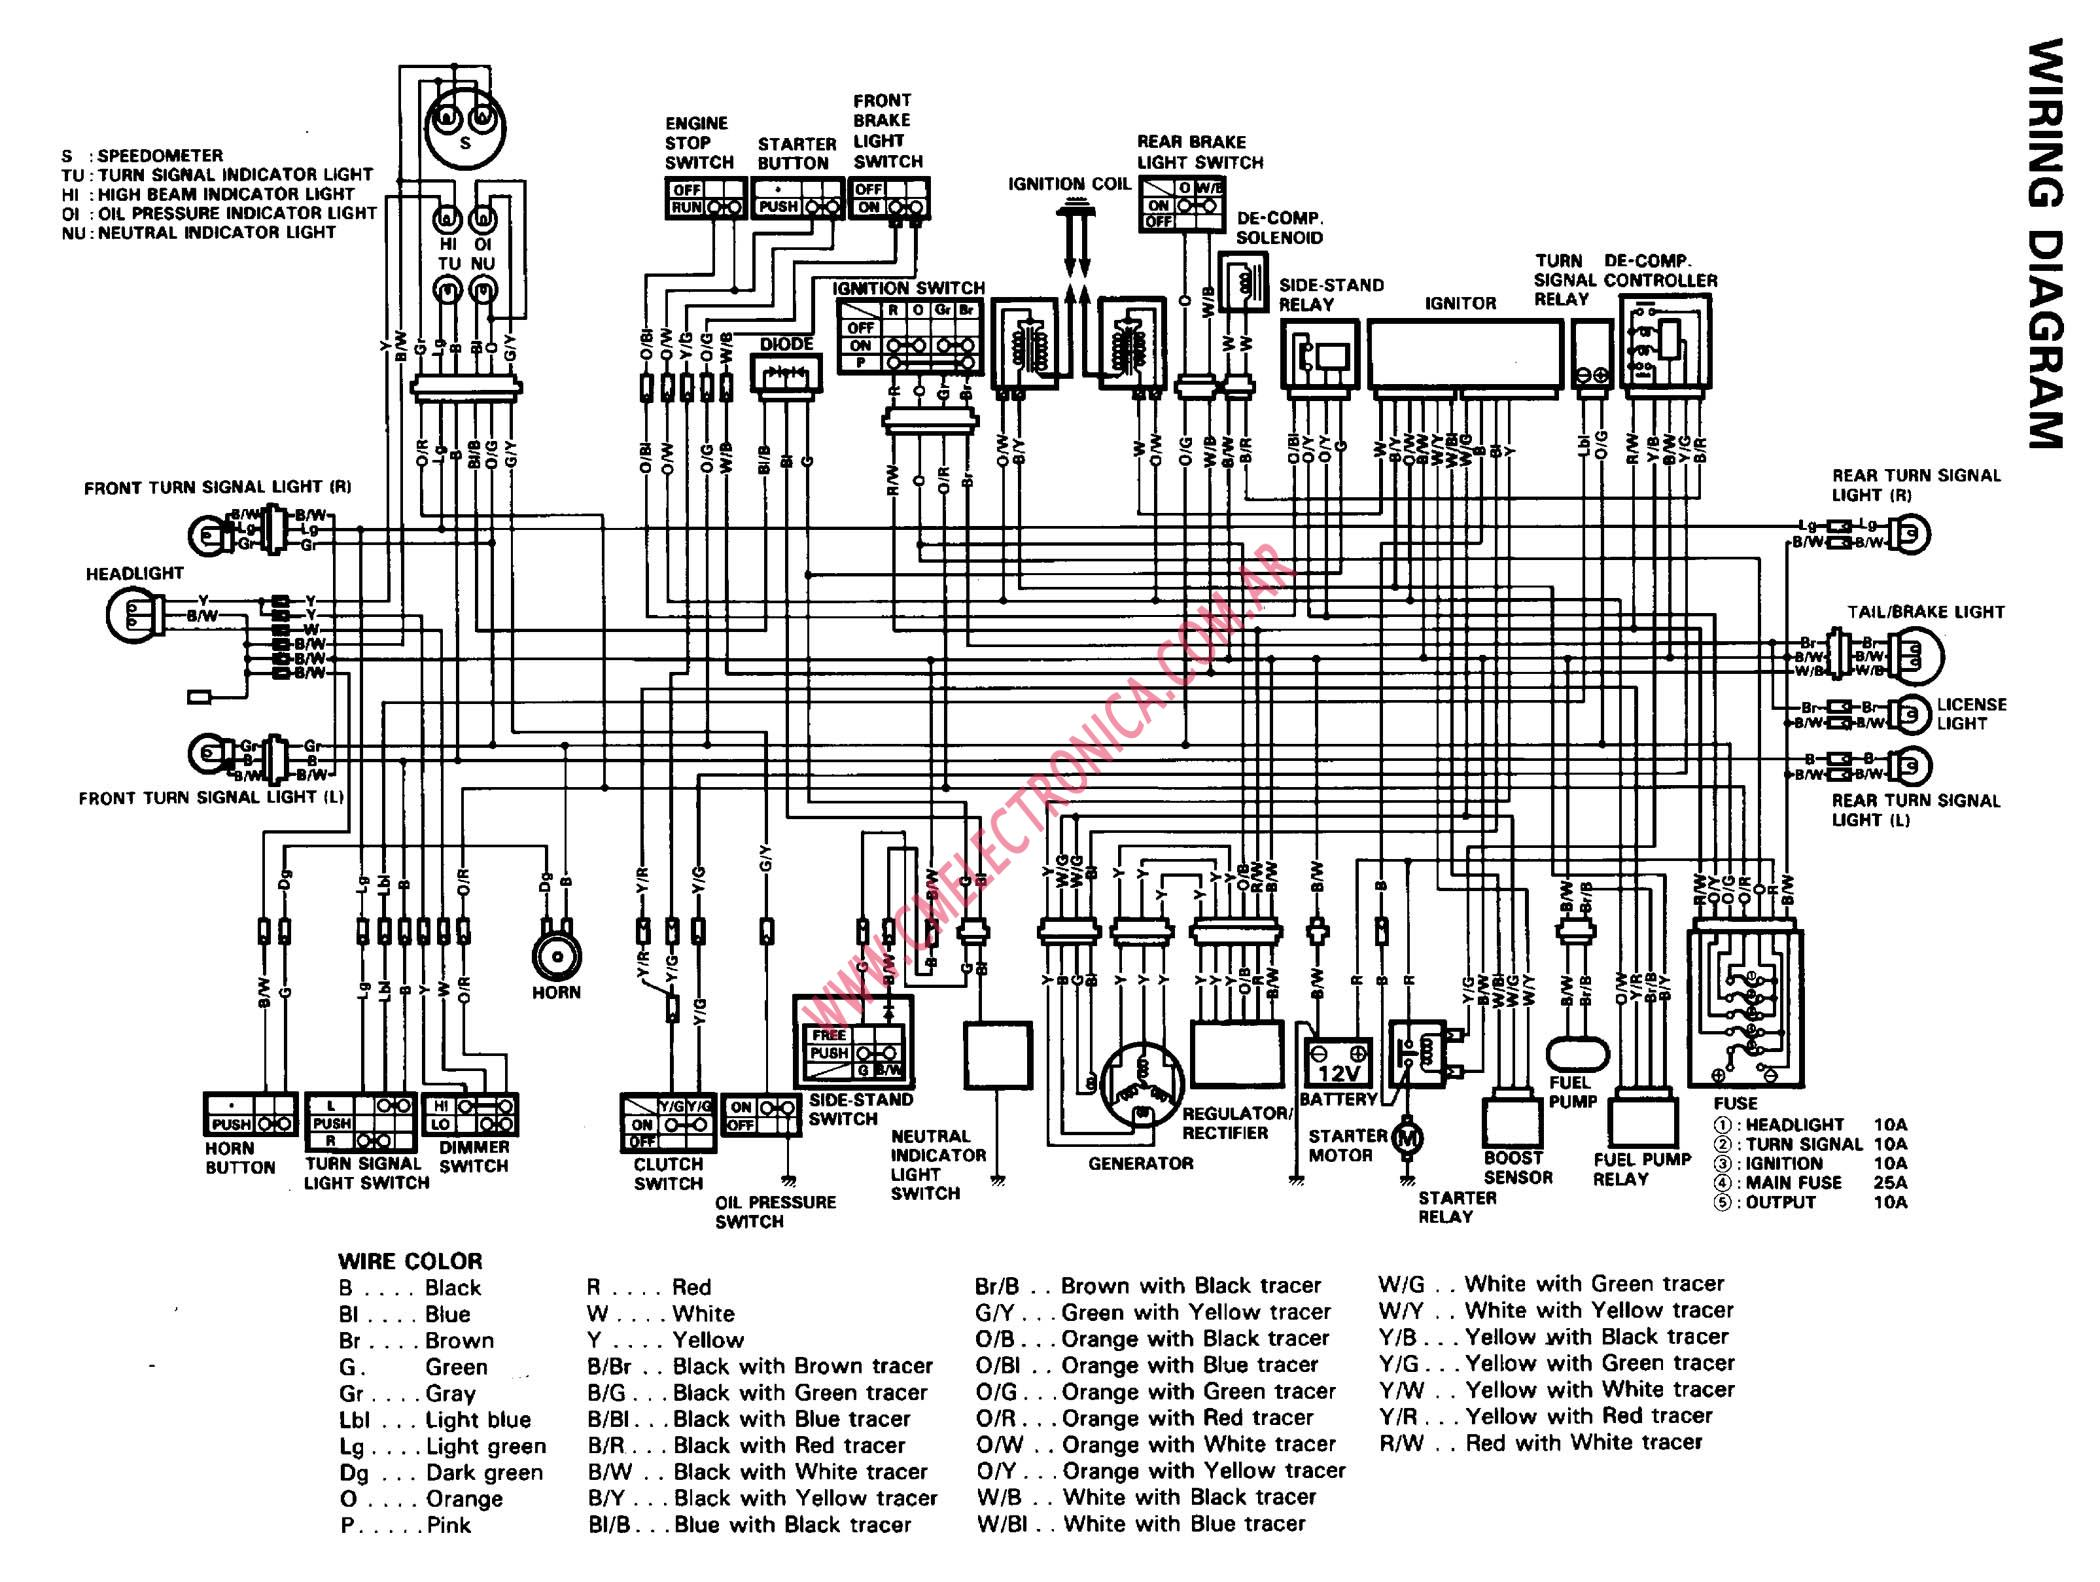 suzuki vl1500 wiring diagram wiring library Suzuki Vl1500 Wiring Diagram solved no signal to ignition coil fixya